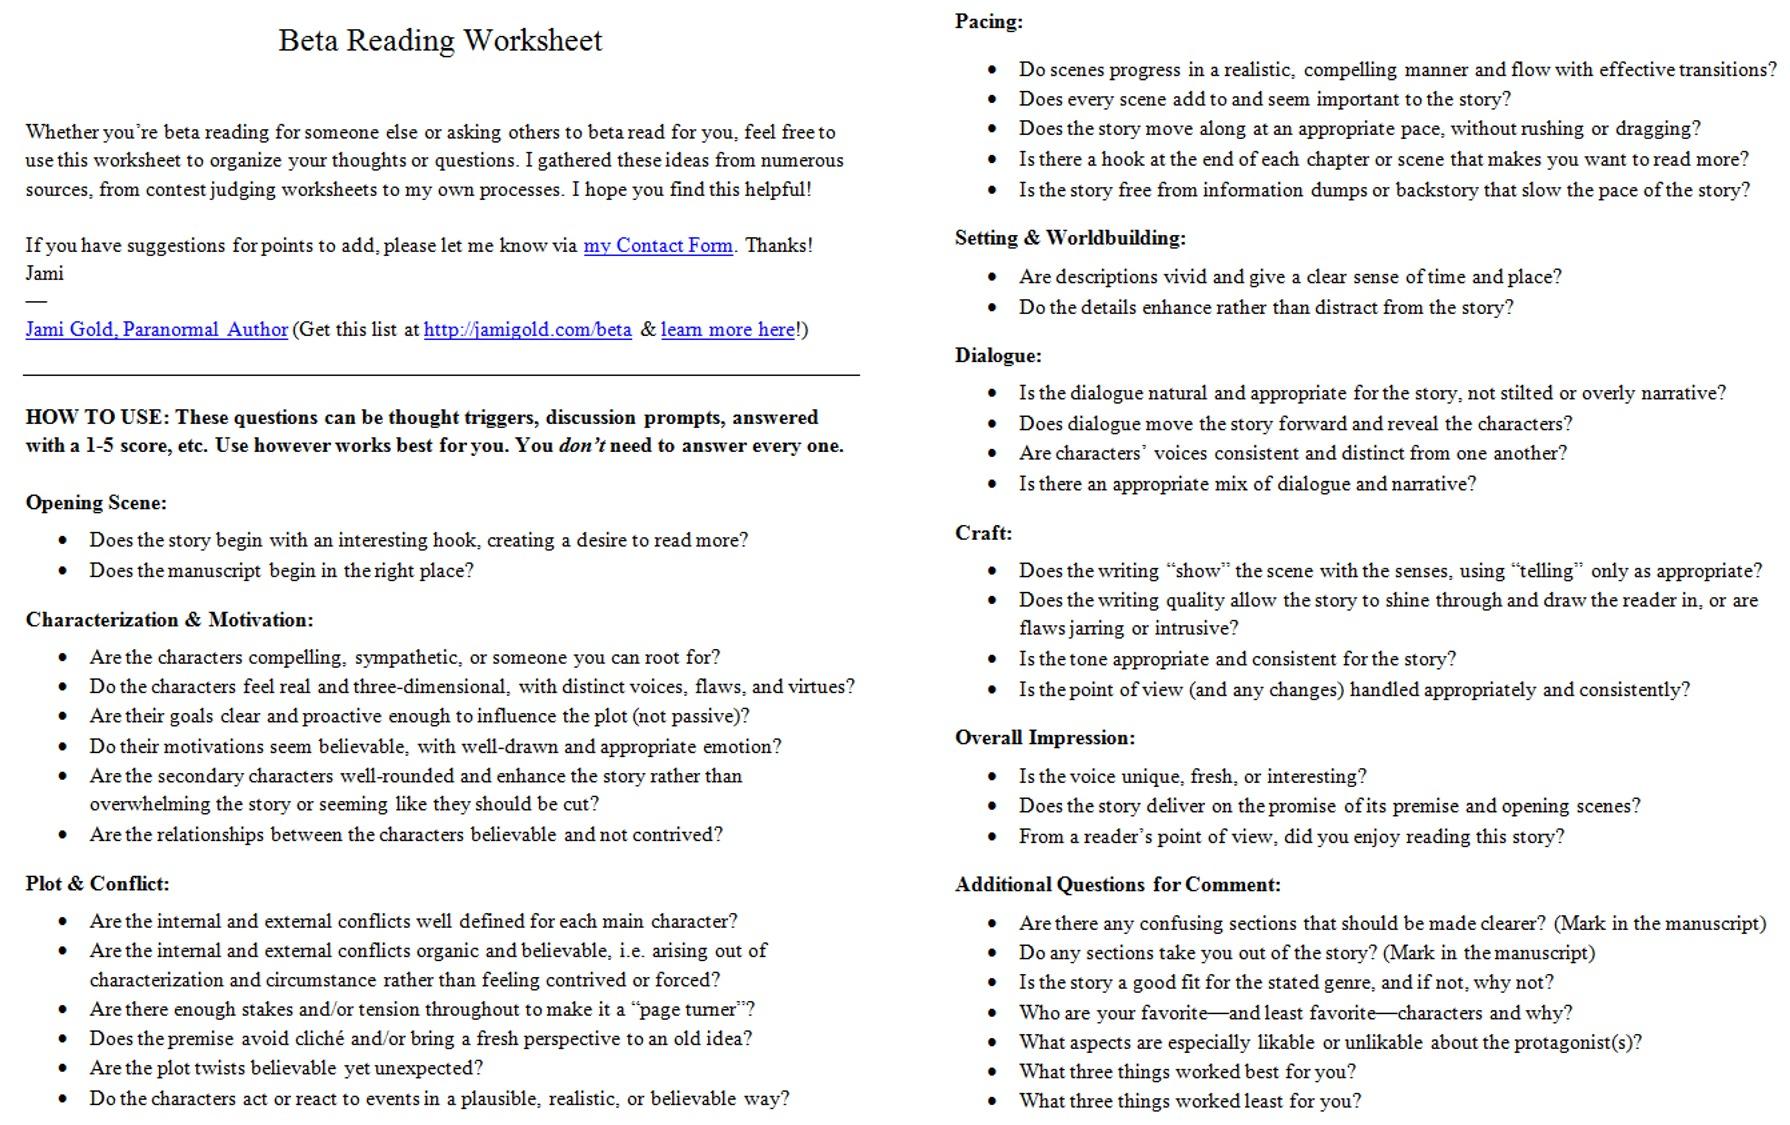 worksheet Plot Development Worksheet worksheets for writers jami gold paranormal author screen shot of the two page beta reading worksheet